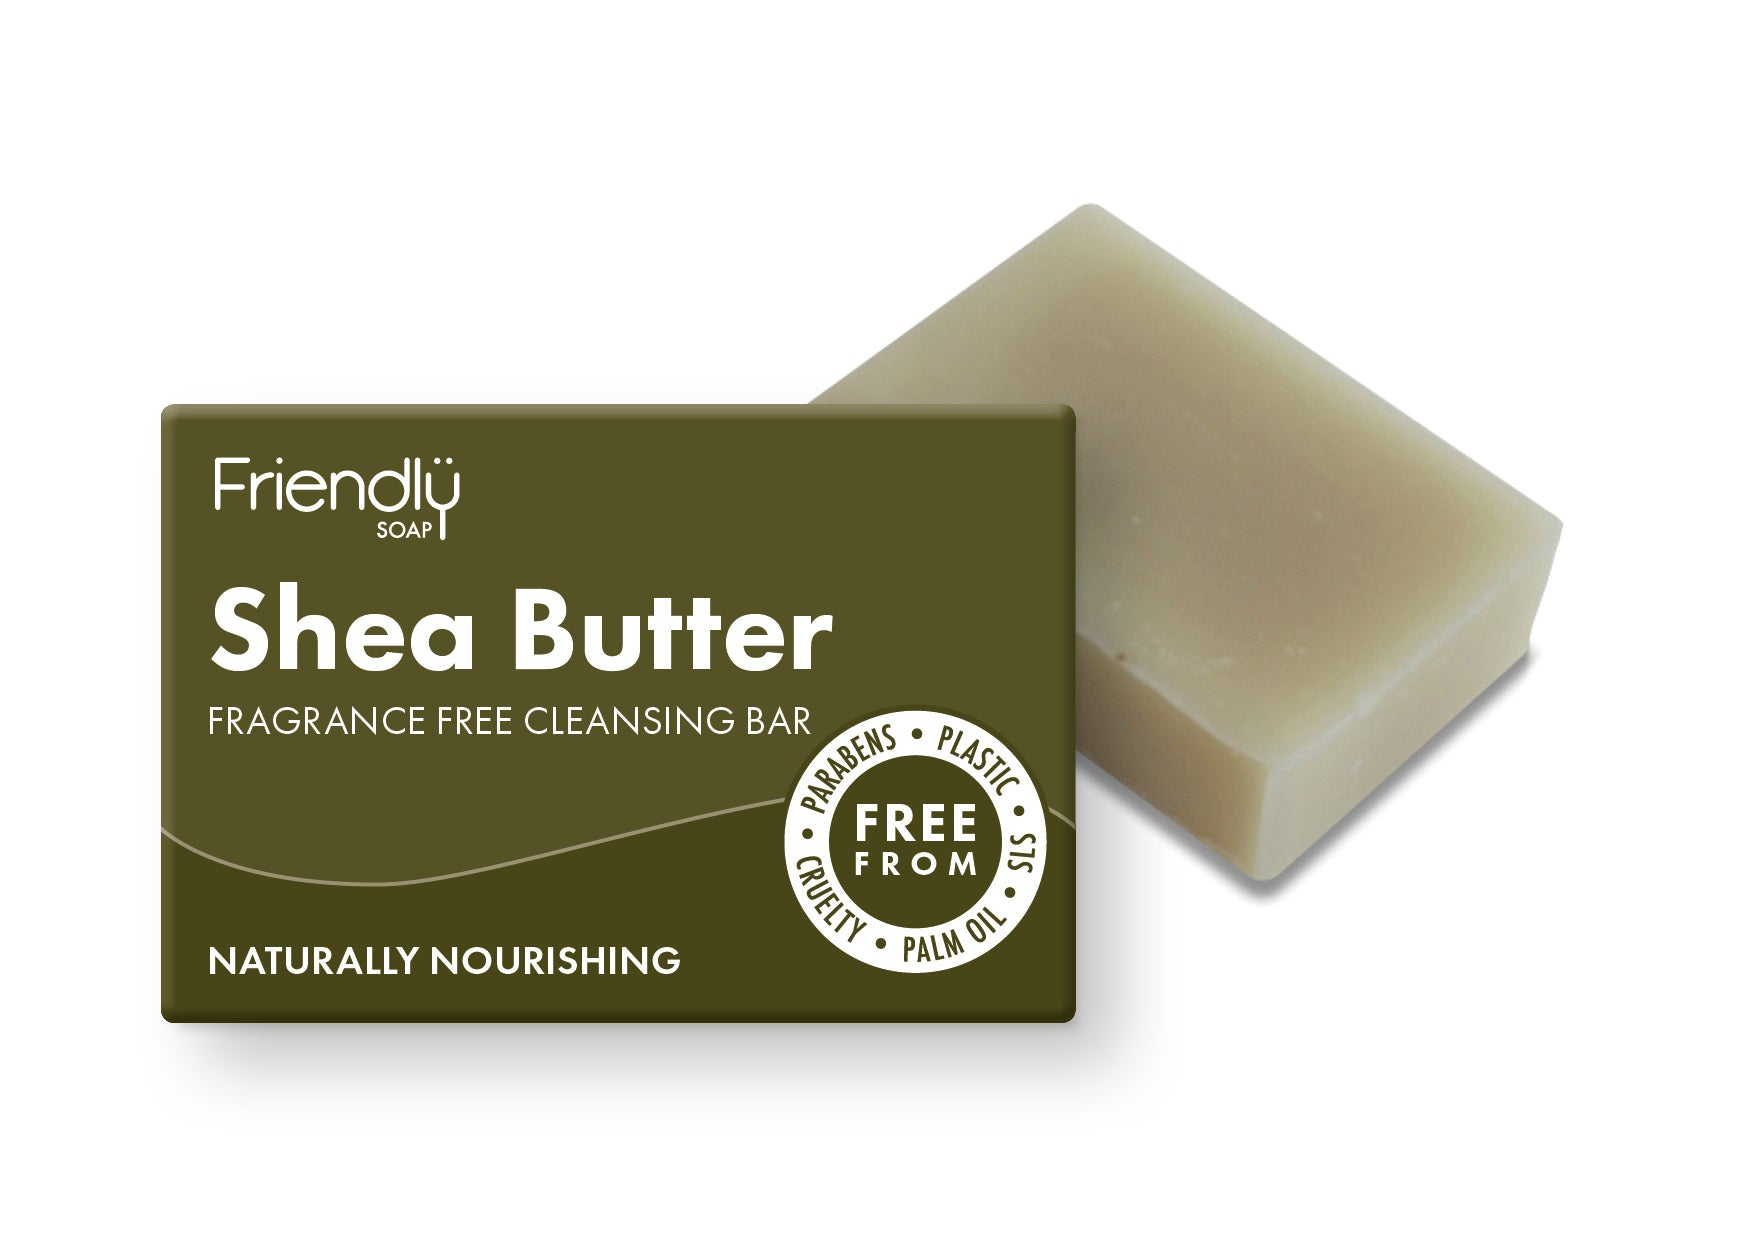 Shea butter cleansing bar in zero waste packaging made by friendly soap